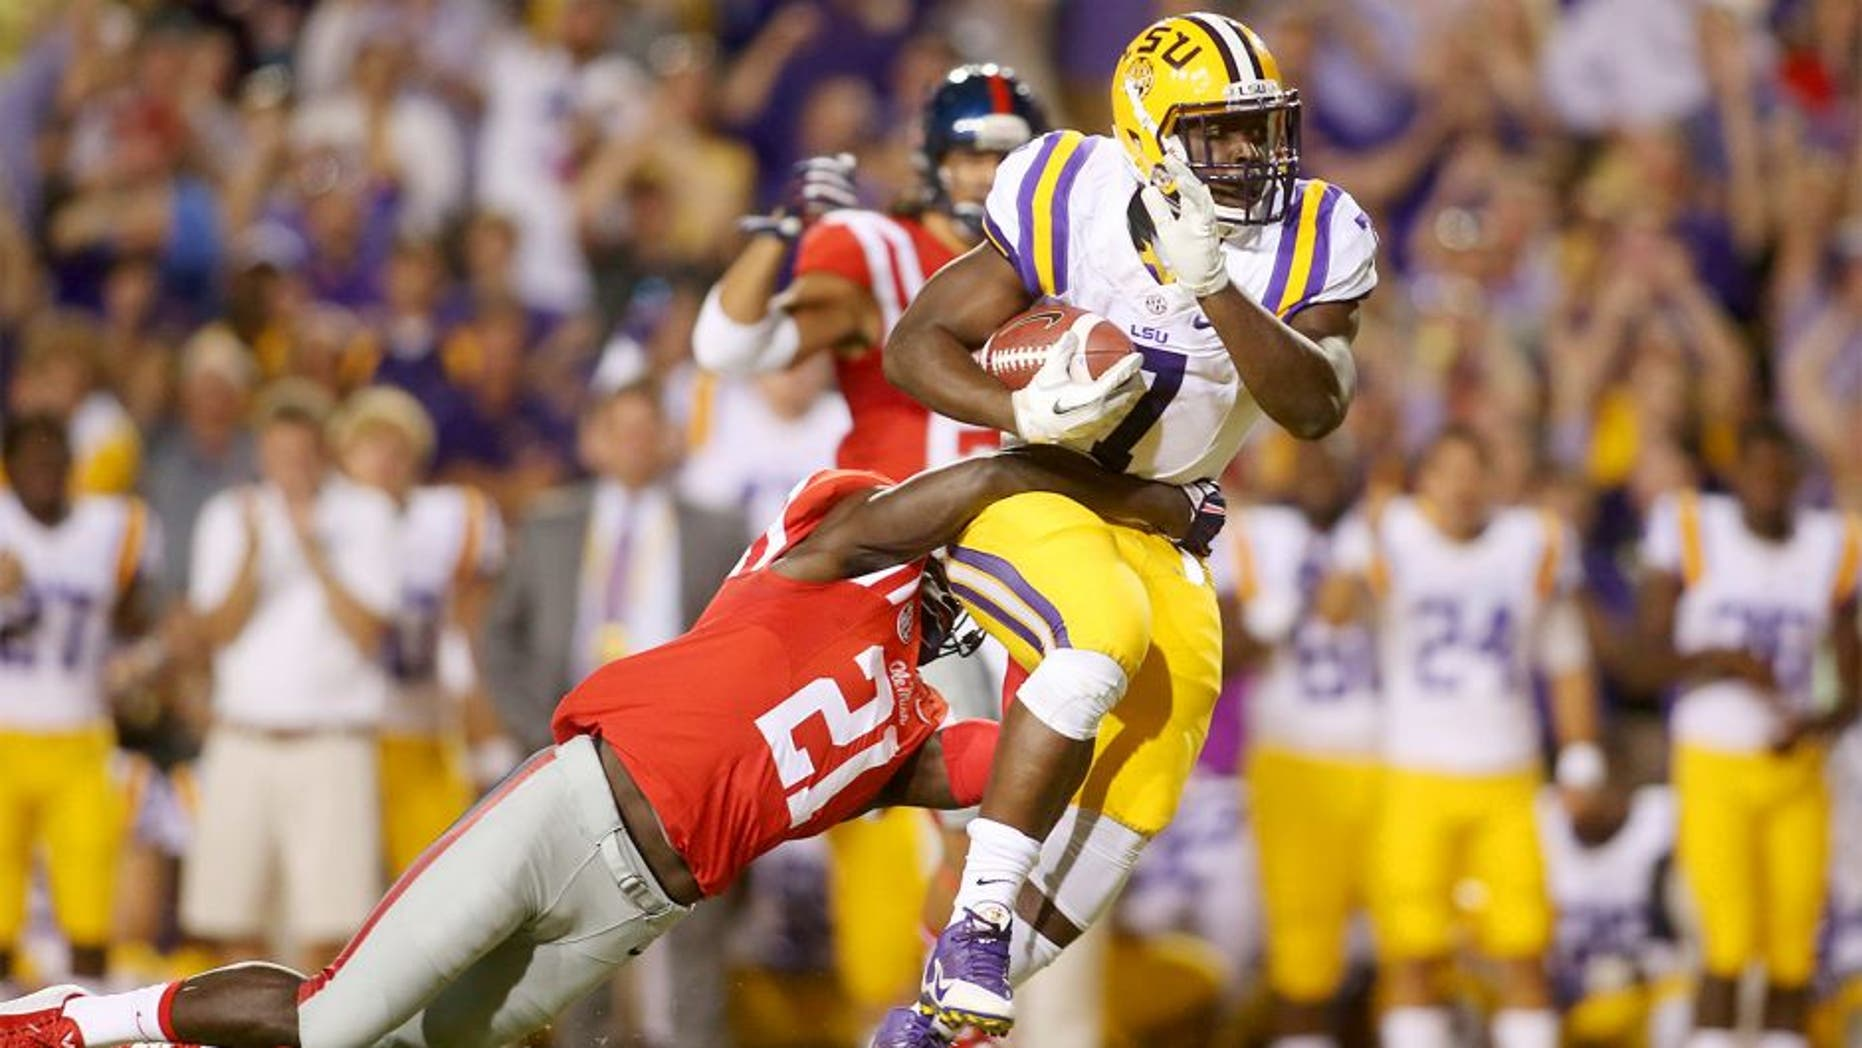 Oct 25, 2014; Baton Rouge, LA, USA; LSU Tigers running back Leonard Fournette (7) is tackled by Mississippi Rebels defensive back Senquez Golson (21) as he carries the ball in the first quarter at Tiger Stadium. Mandatory Credit: Crystal LoGiudice-USA TODAY Sports